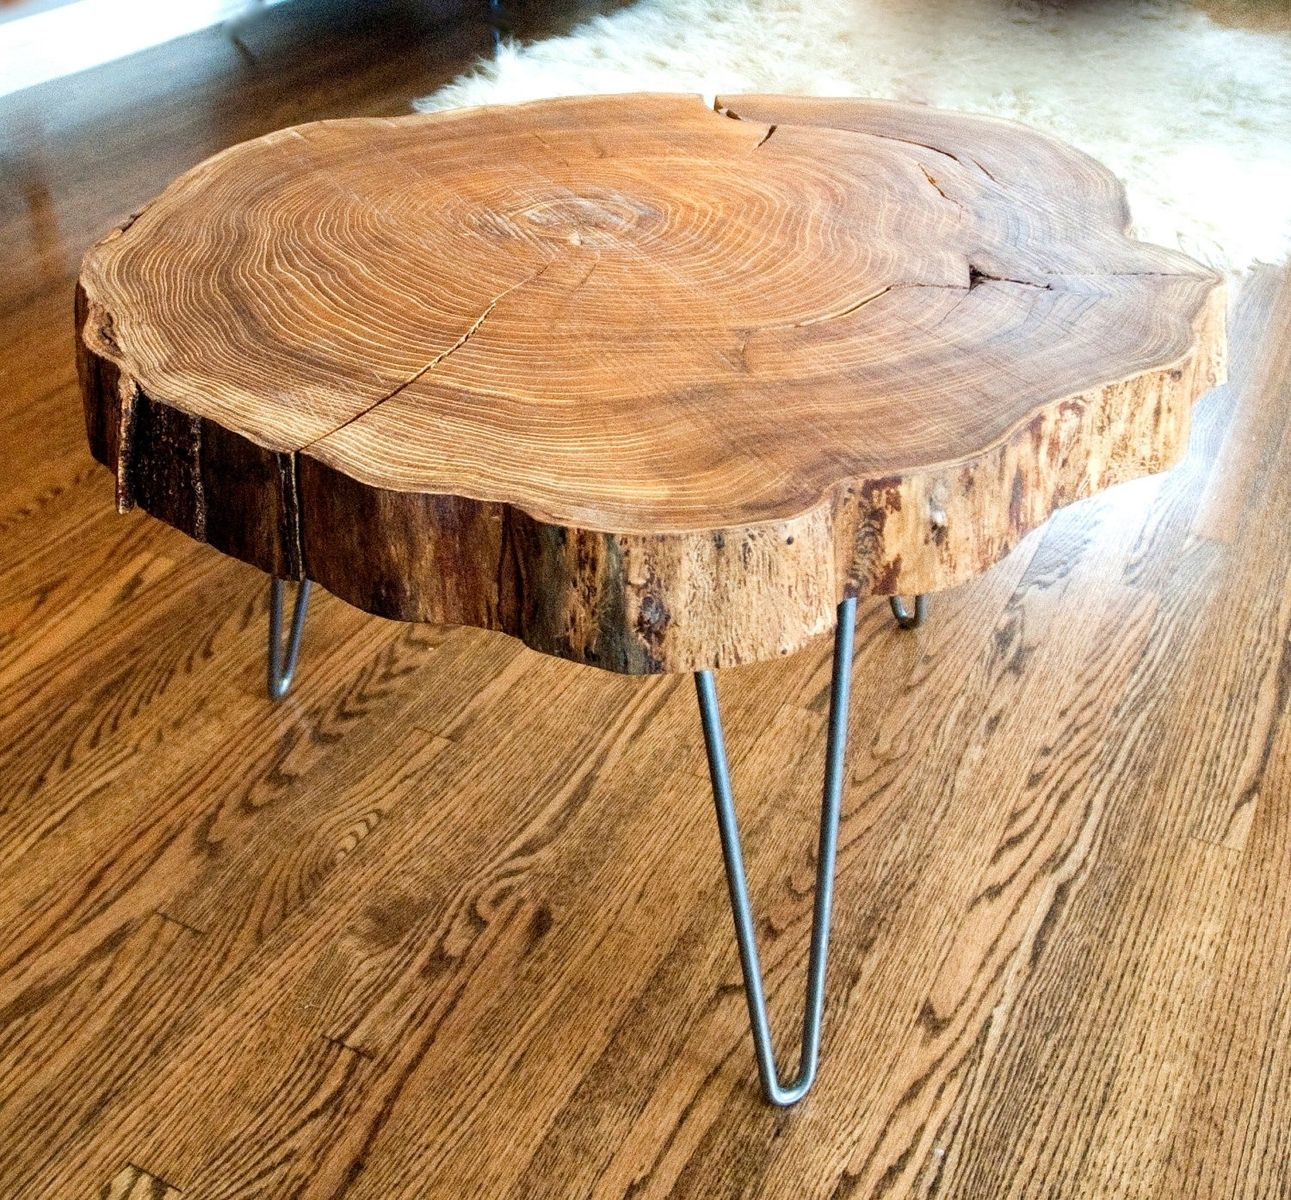 custom natural live edge round slab side table coffee table with steel legs by norsk valley. Black Bedroom Furniture Sets. Home Design Ideas